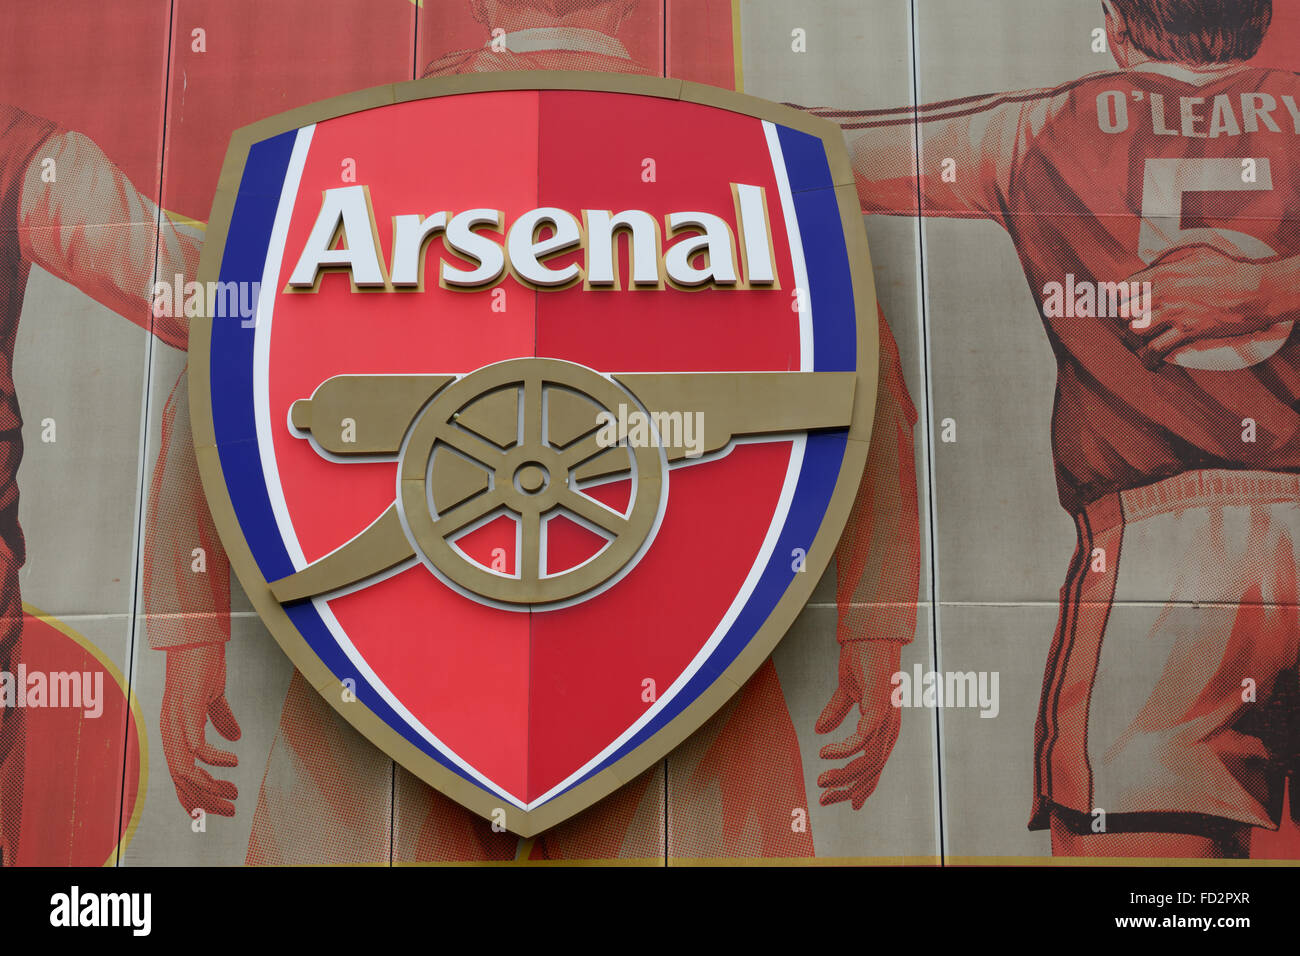 https www alamy com stock photo arsenal logo on big poster with former star players on the outside 94104271 html